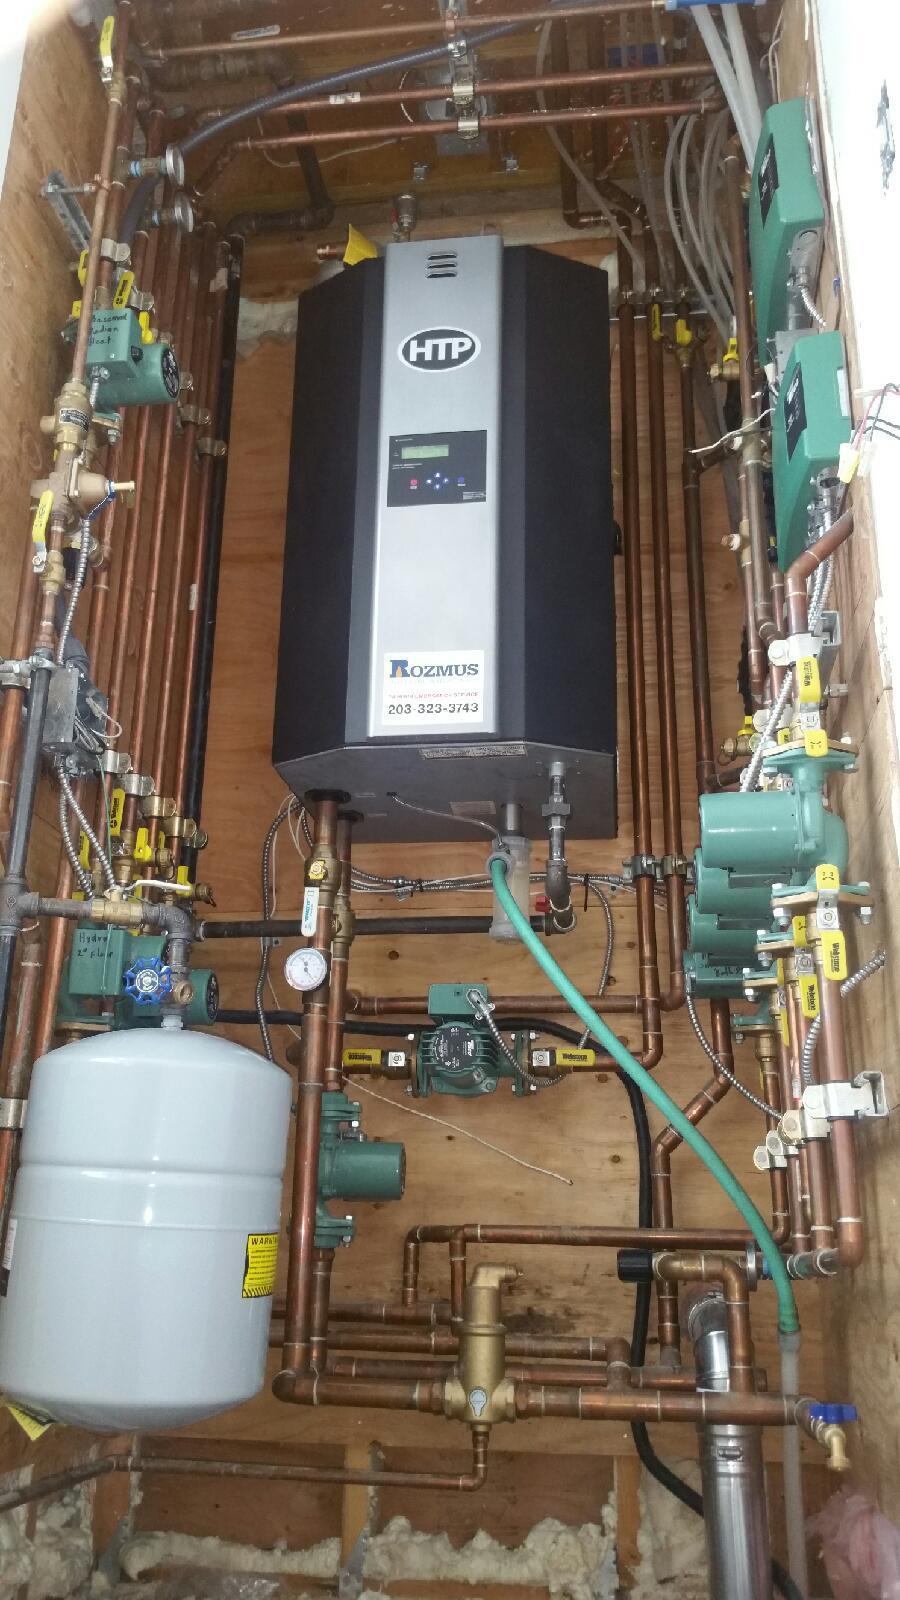 on-demand-water-heater-system-rozmus-plumbing-and-heating-greenwich-ct